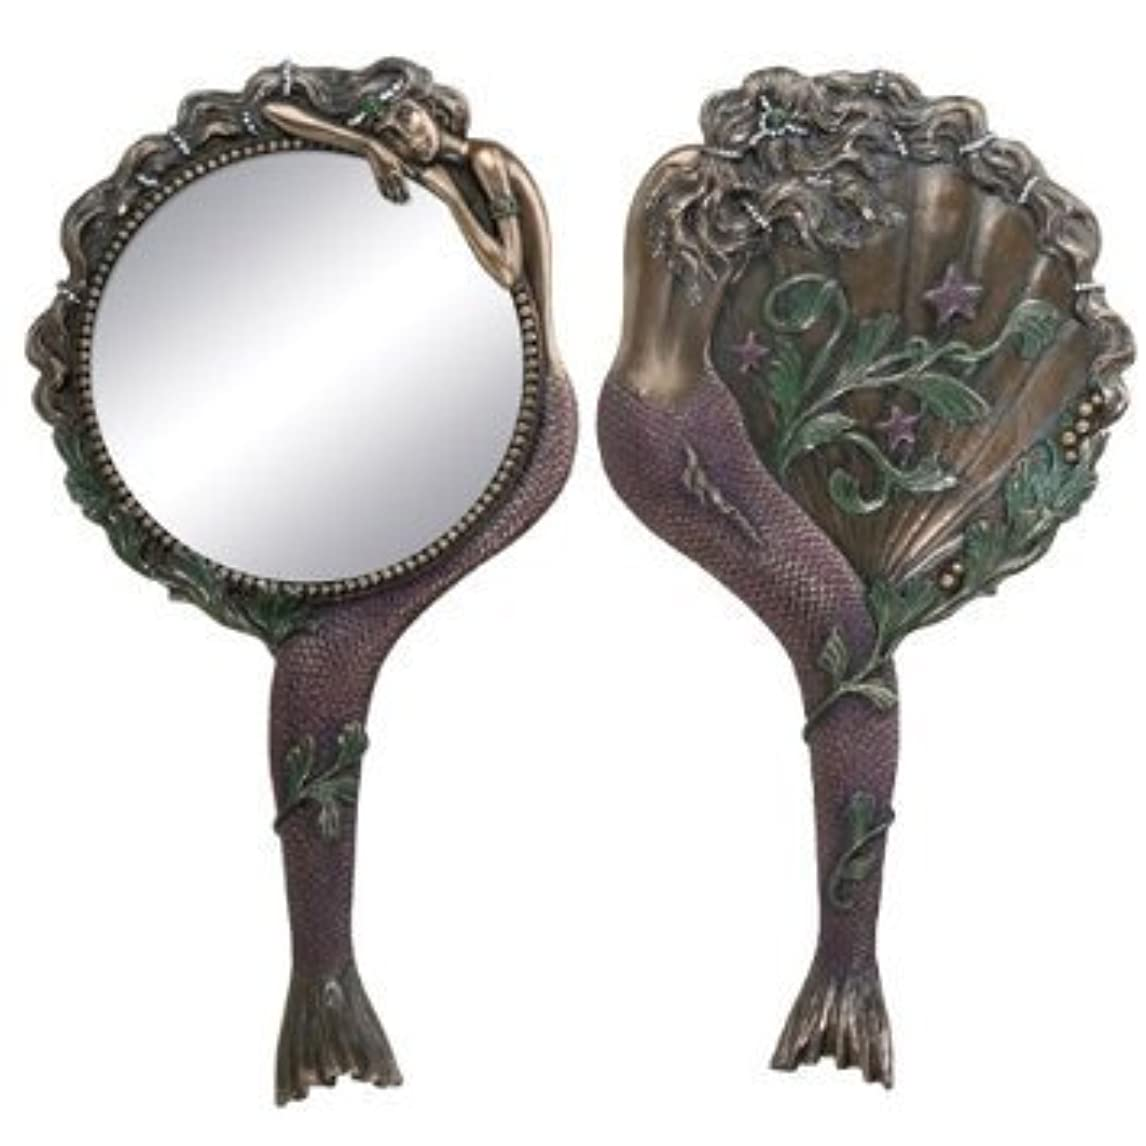 排出ドレス名目上のArt Nouveau Collectible Mermaid Hand Mirror Nymph Decoration by Summit